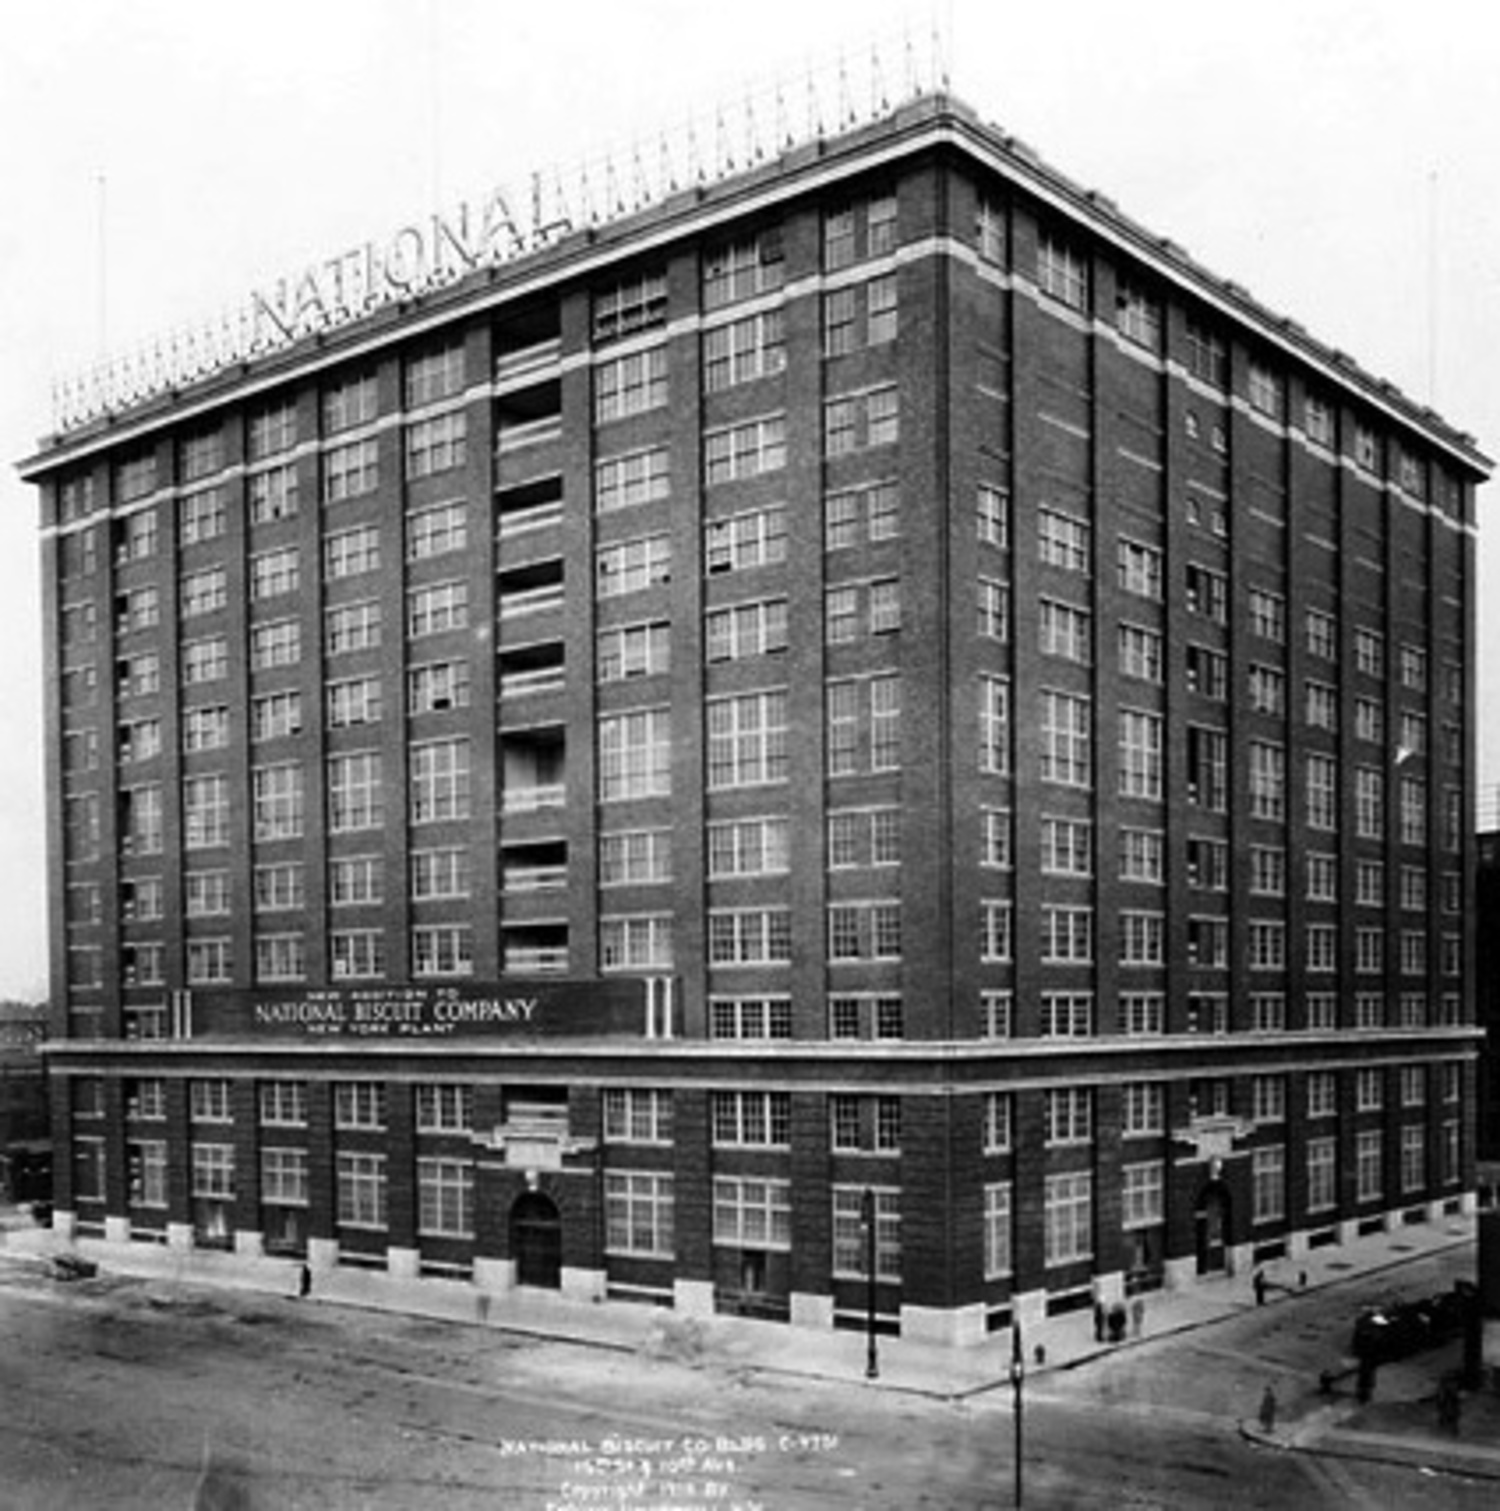 National Biscuit Company Factory, 1912